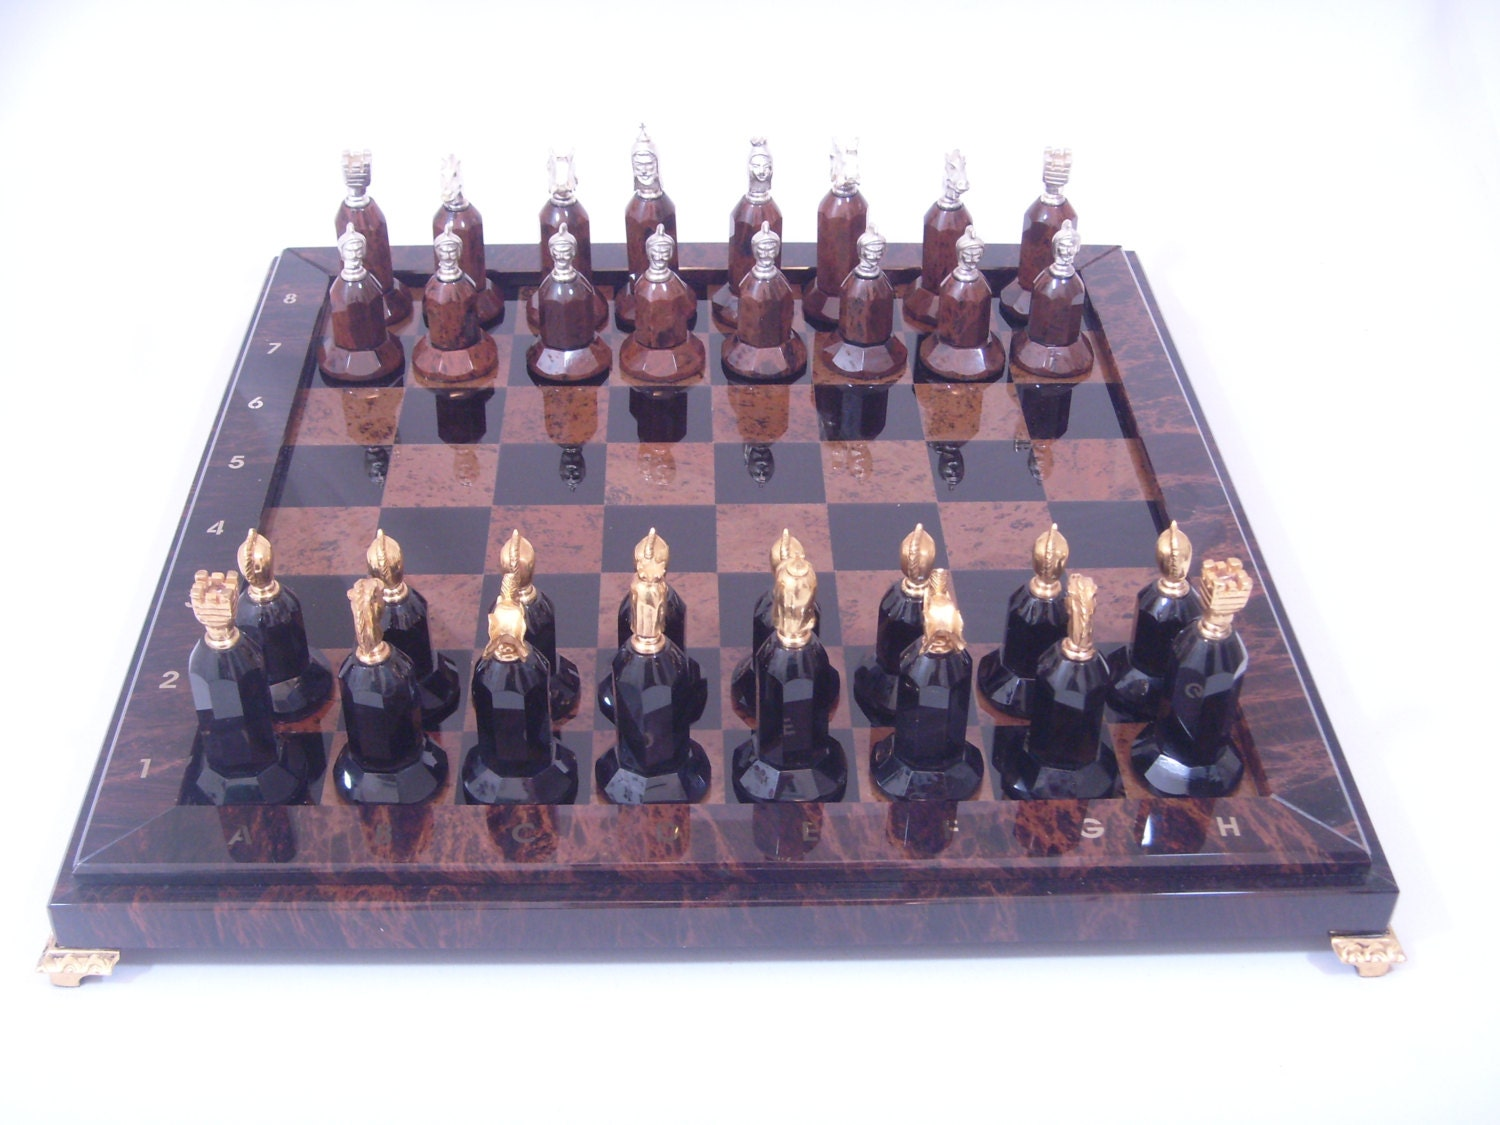 Antique stone chess obsidian stone chess set by thetigrangallery - Granite chess pieces ...